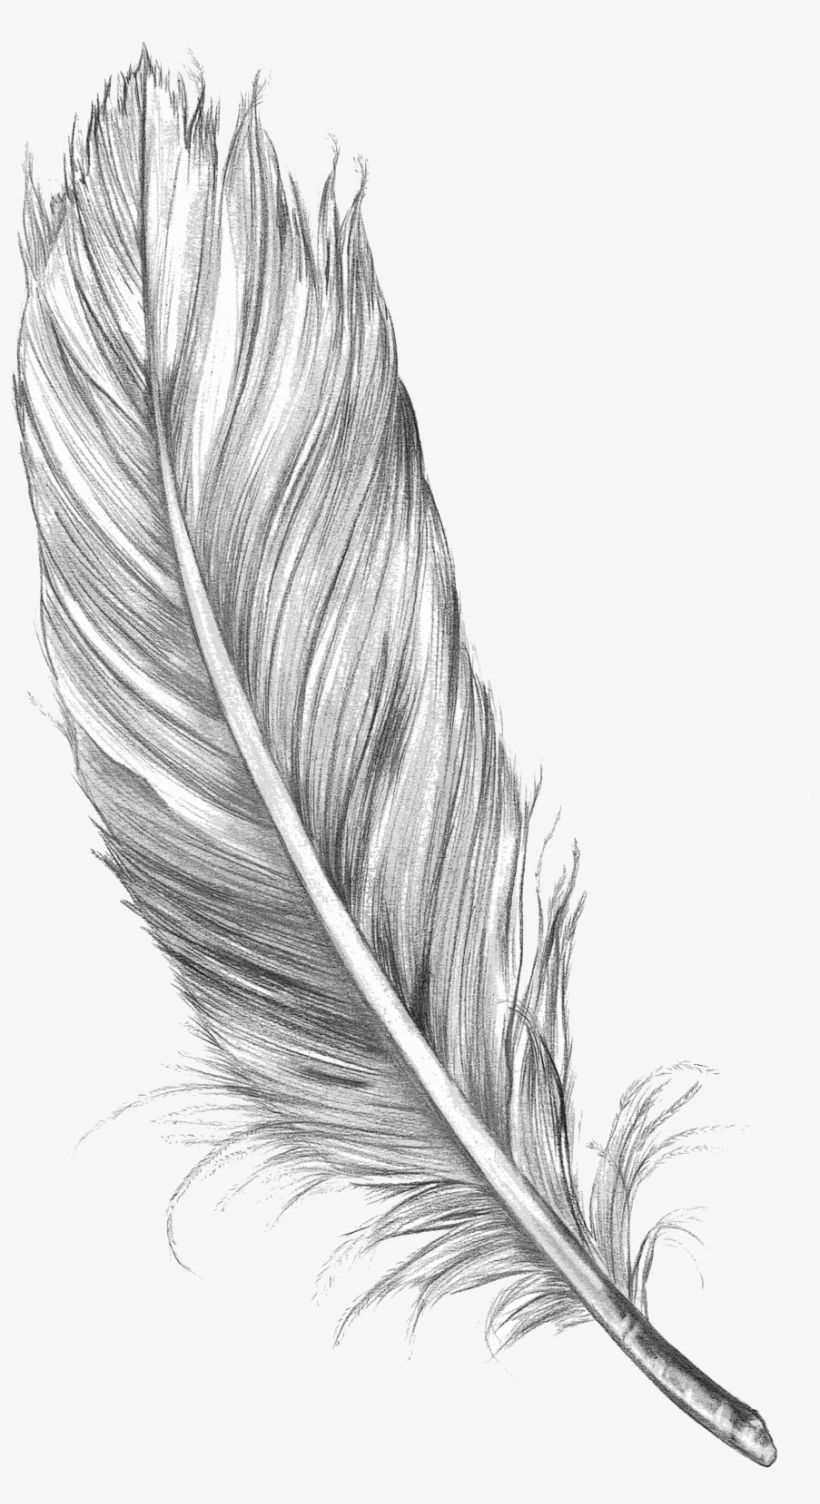 15 Feather Drawing Png For Free Download On Mbtskoudsalg Pluma